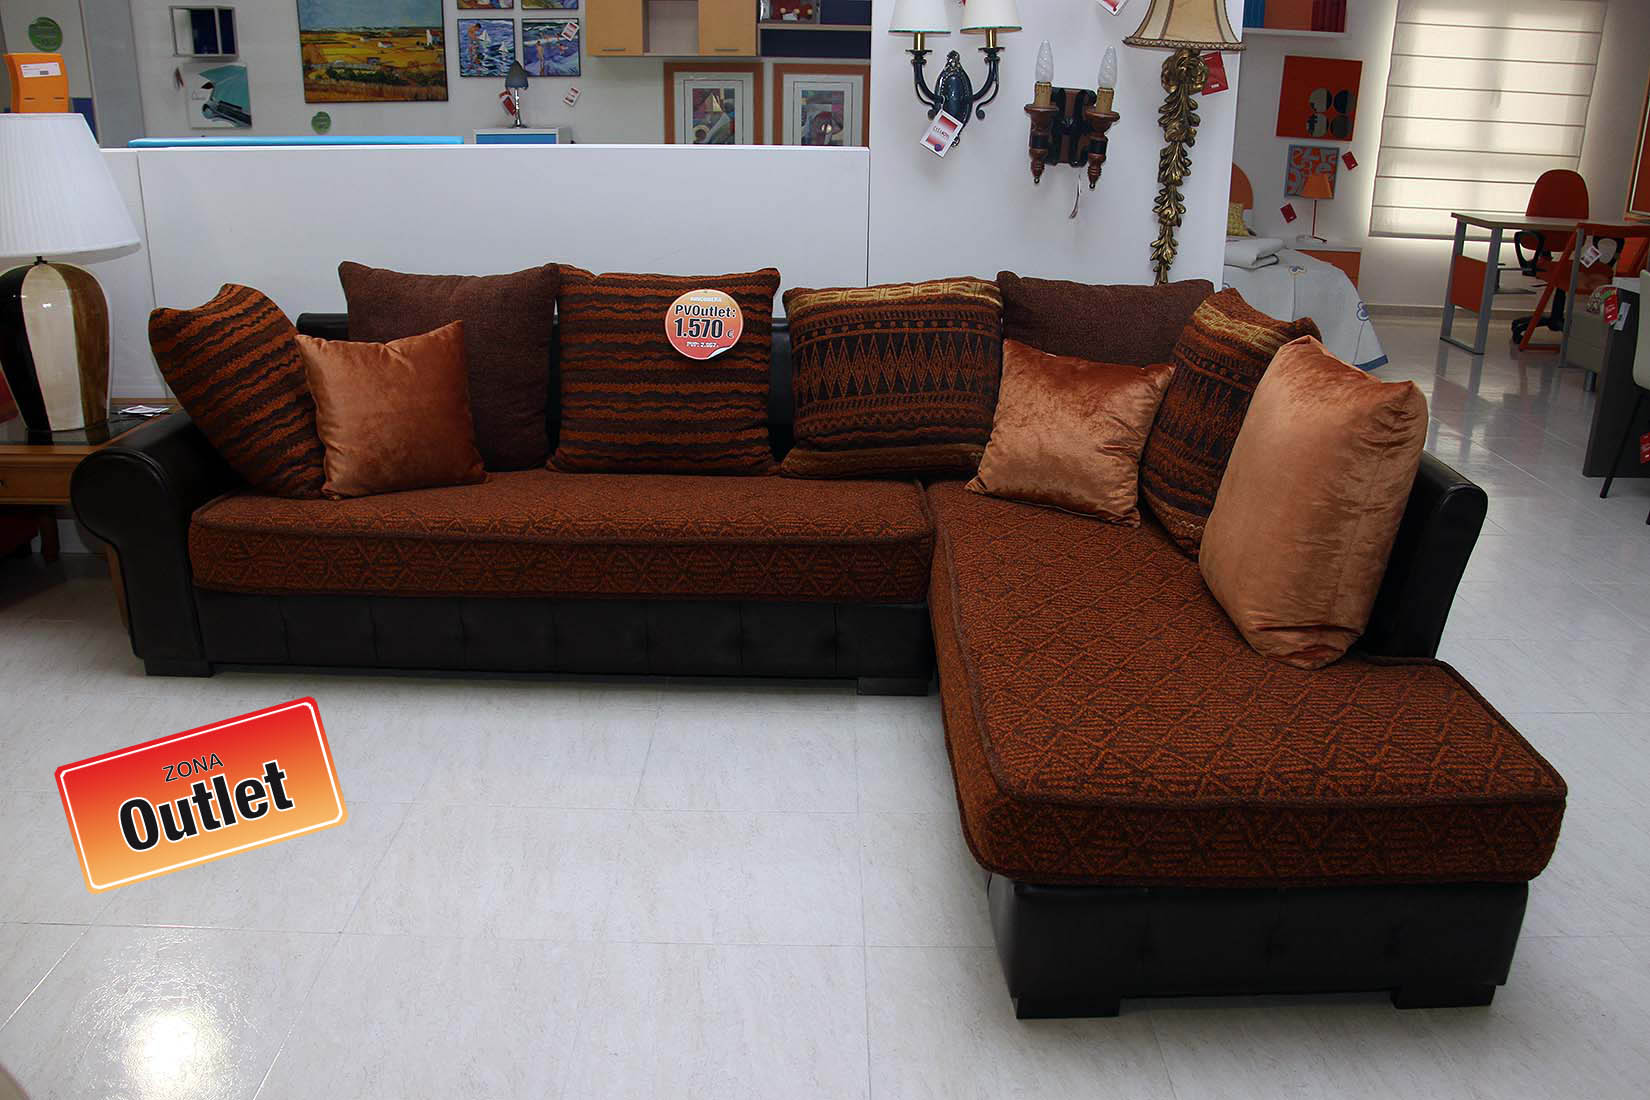 Muebles y decoracion online outlet awesome descuentos for Privalia muebles